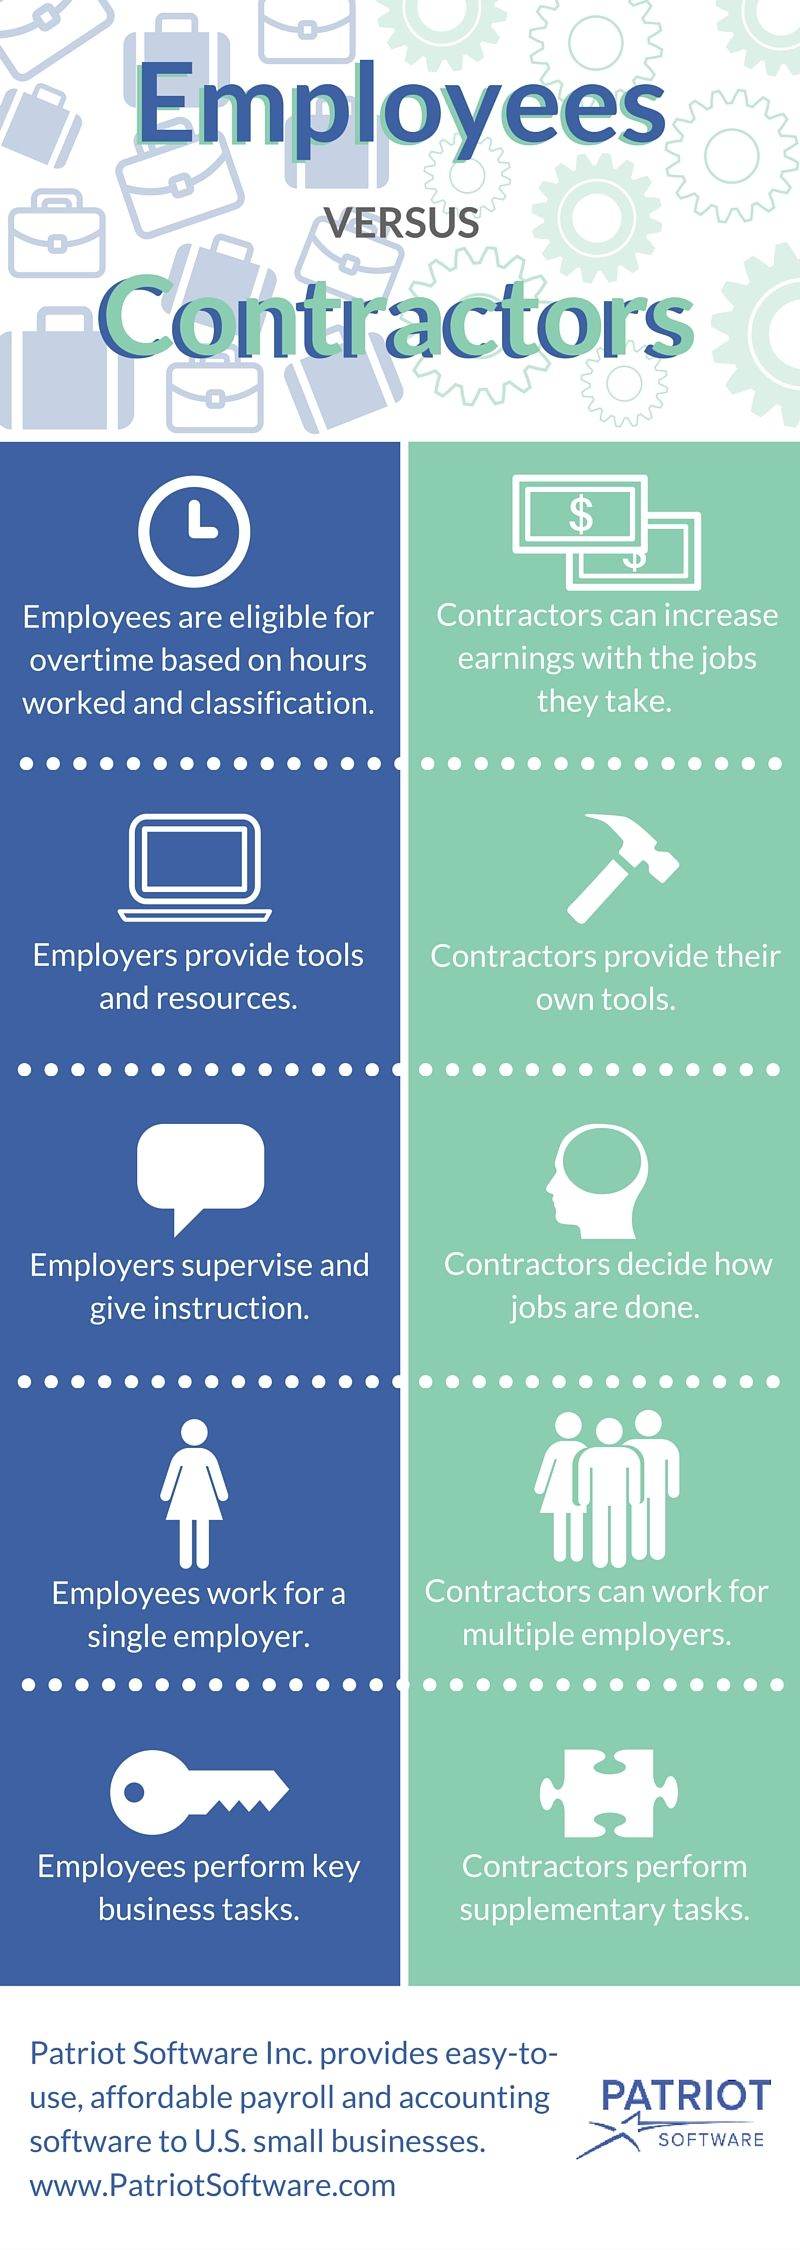 Independent contractor vs. employee checklist infographic from Patriot Software.